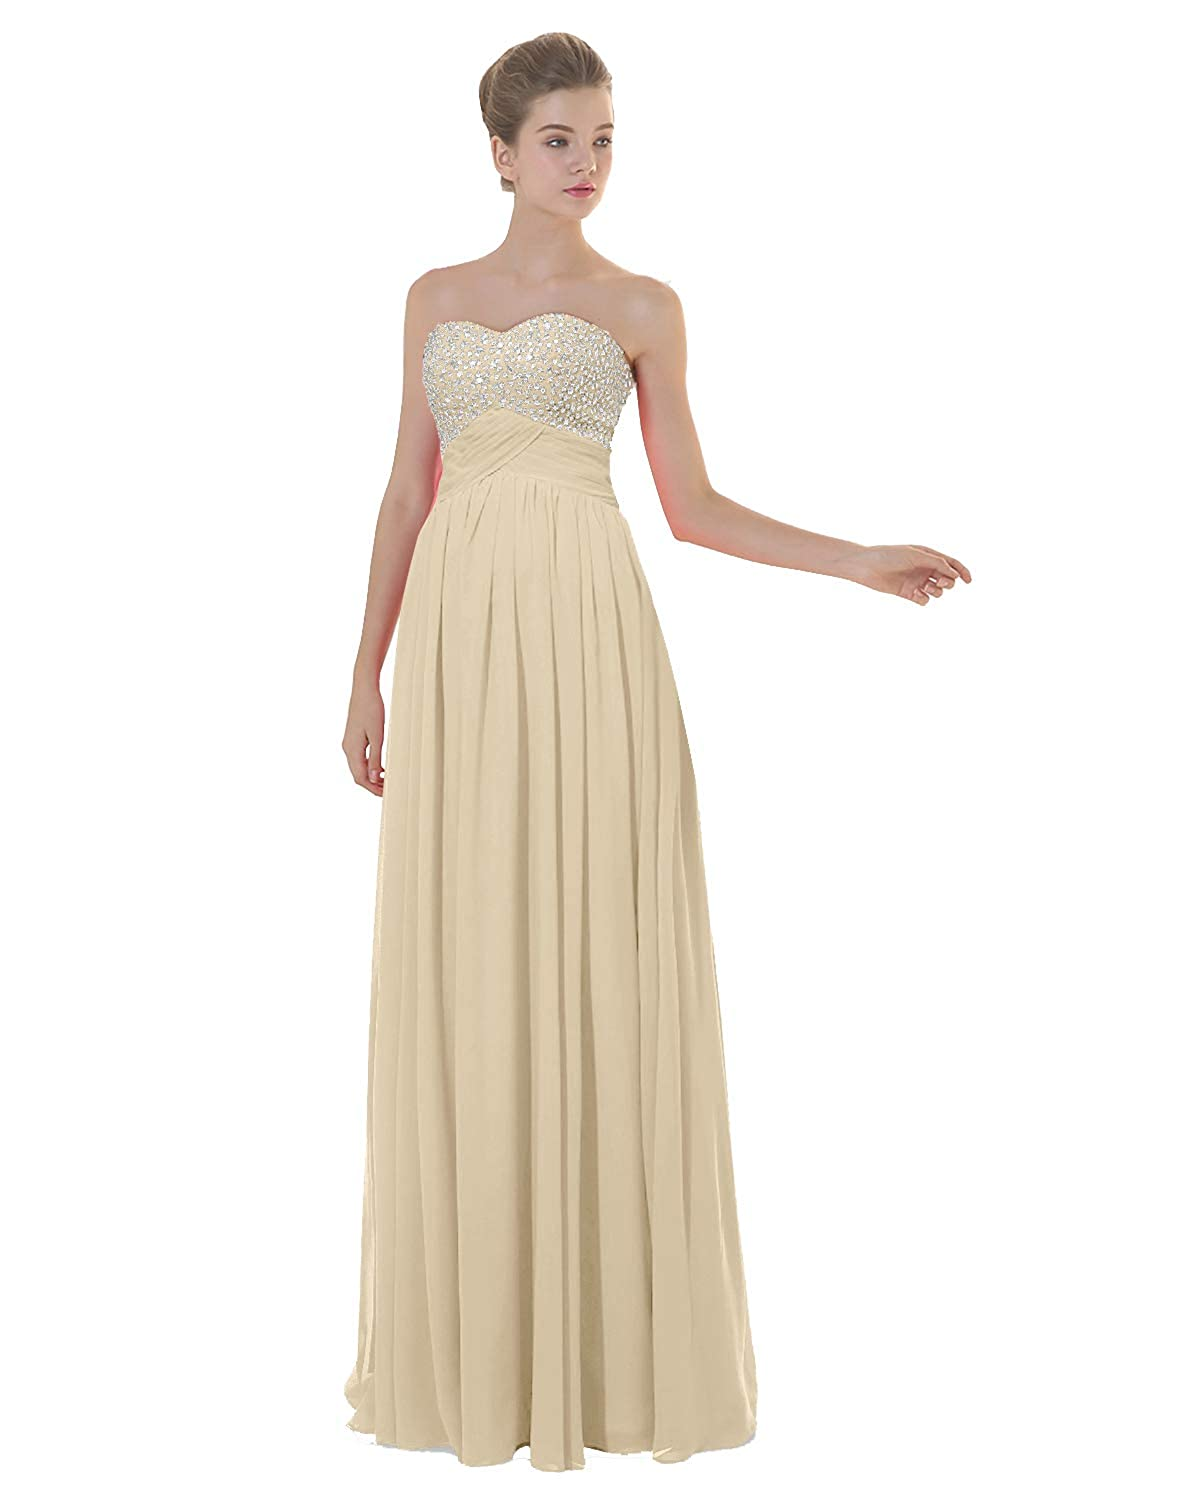 Champagne ANGELWARDROBE Empire Beaded Sweetheart Neck Prom Gowns Long Evening Dresses Party Skirts